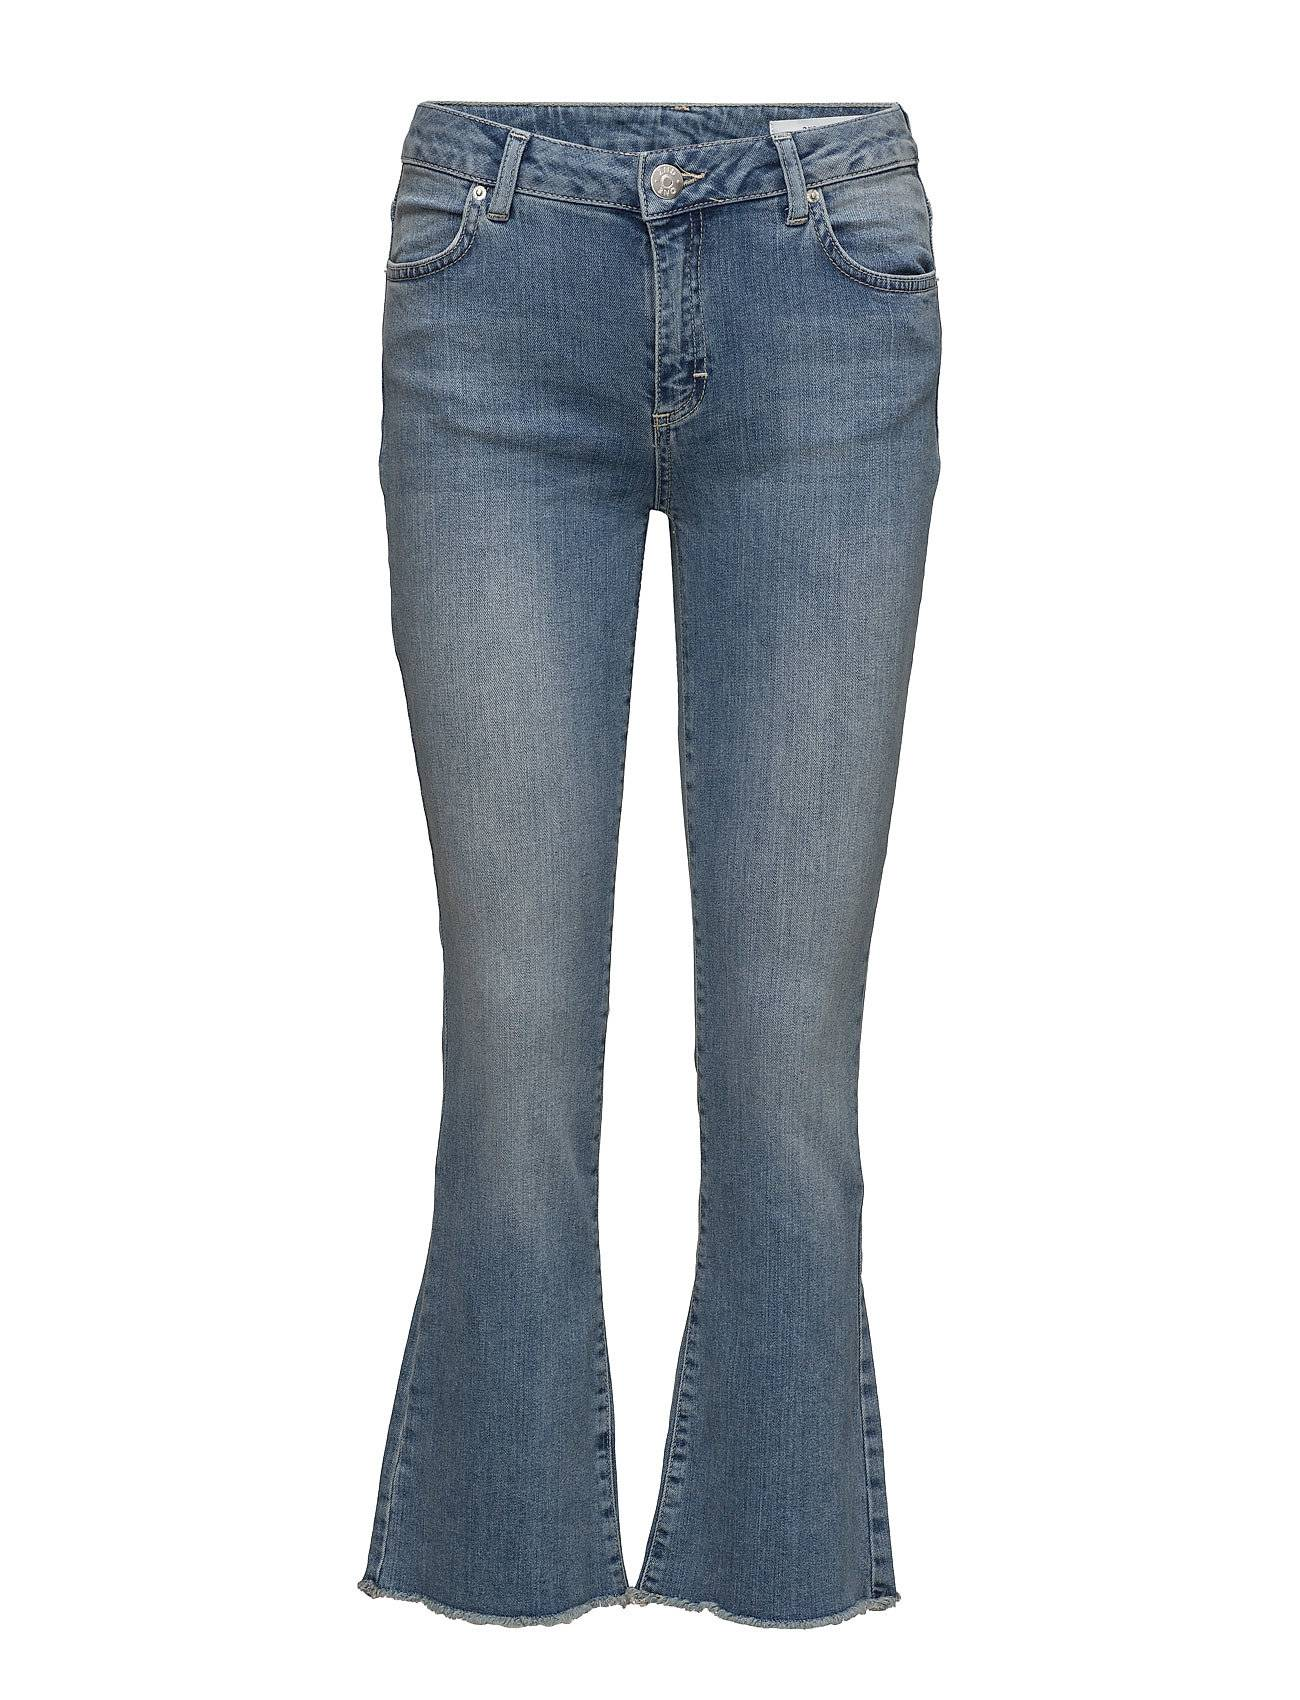 2nd One Janelle 824 Vintage Soul, Jeans